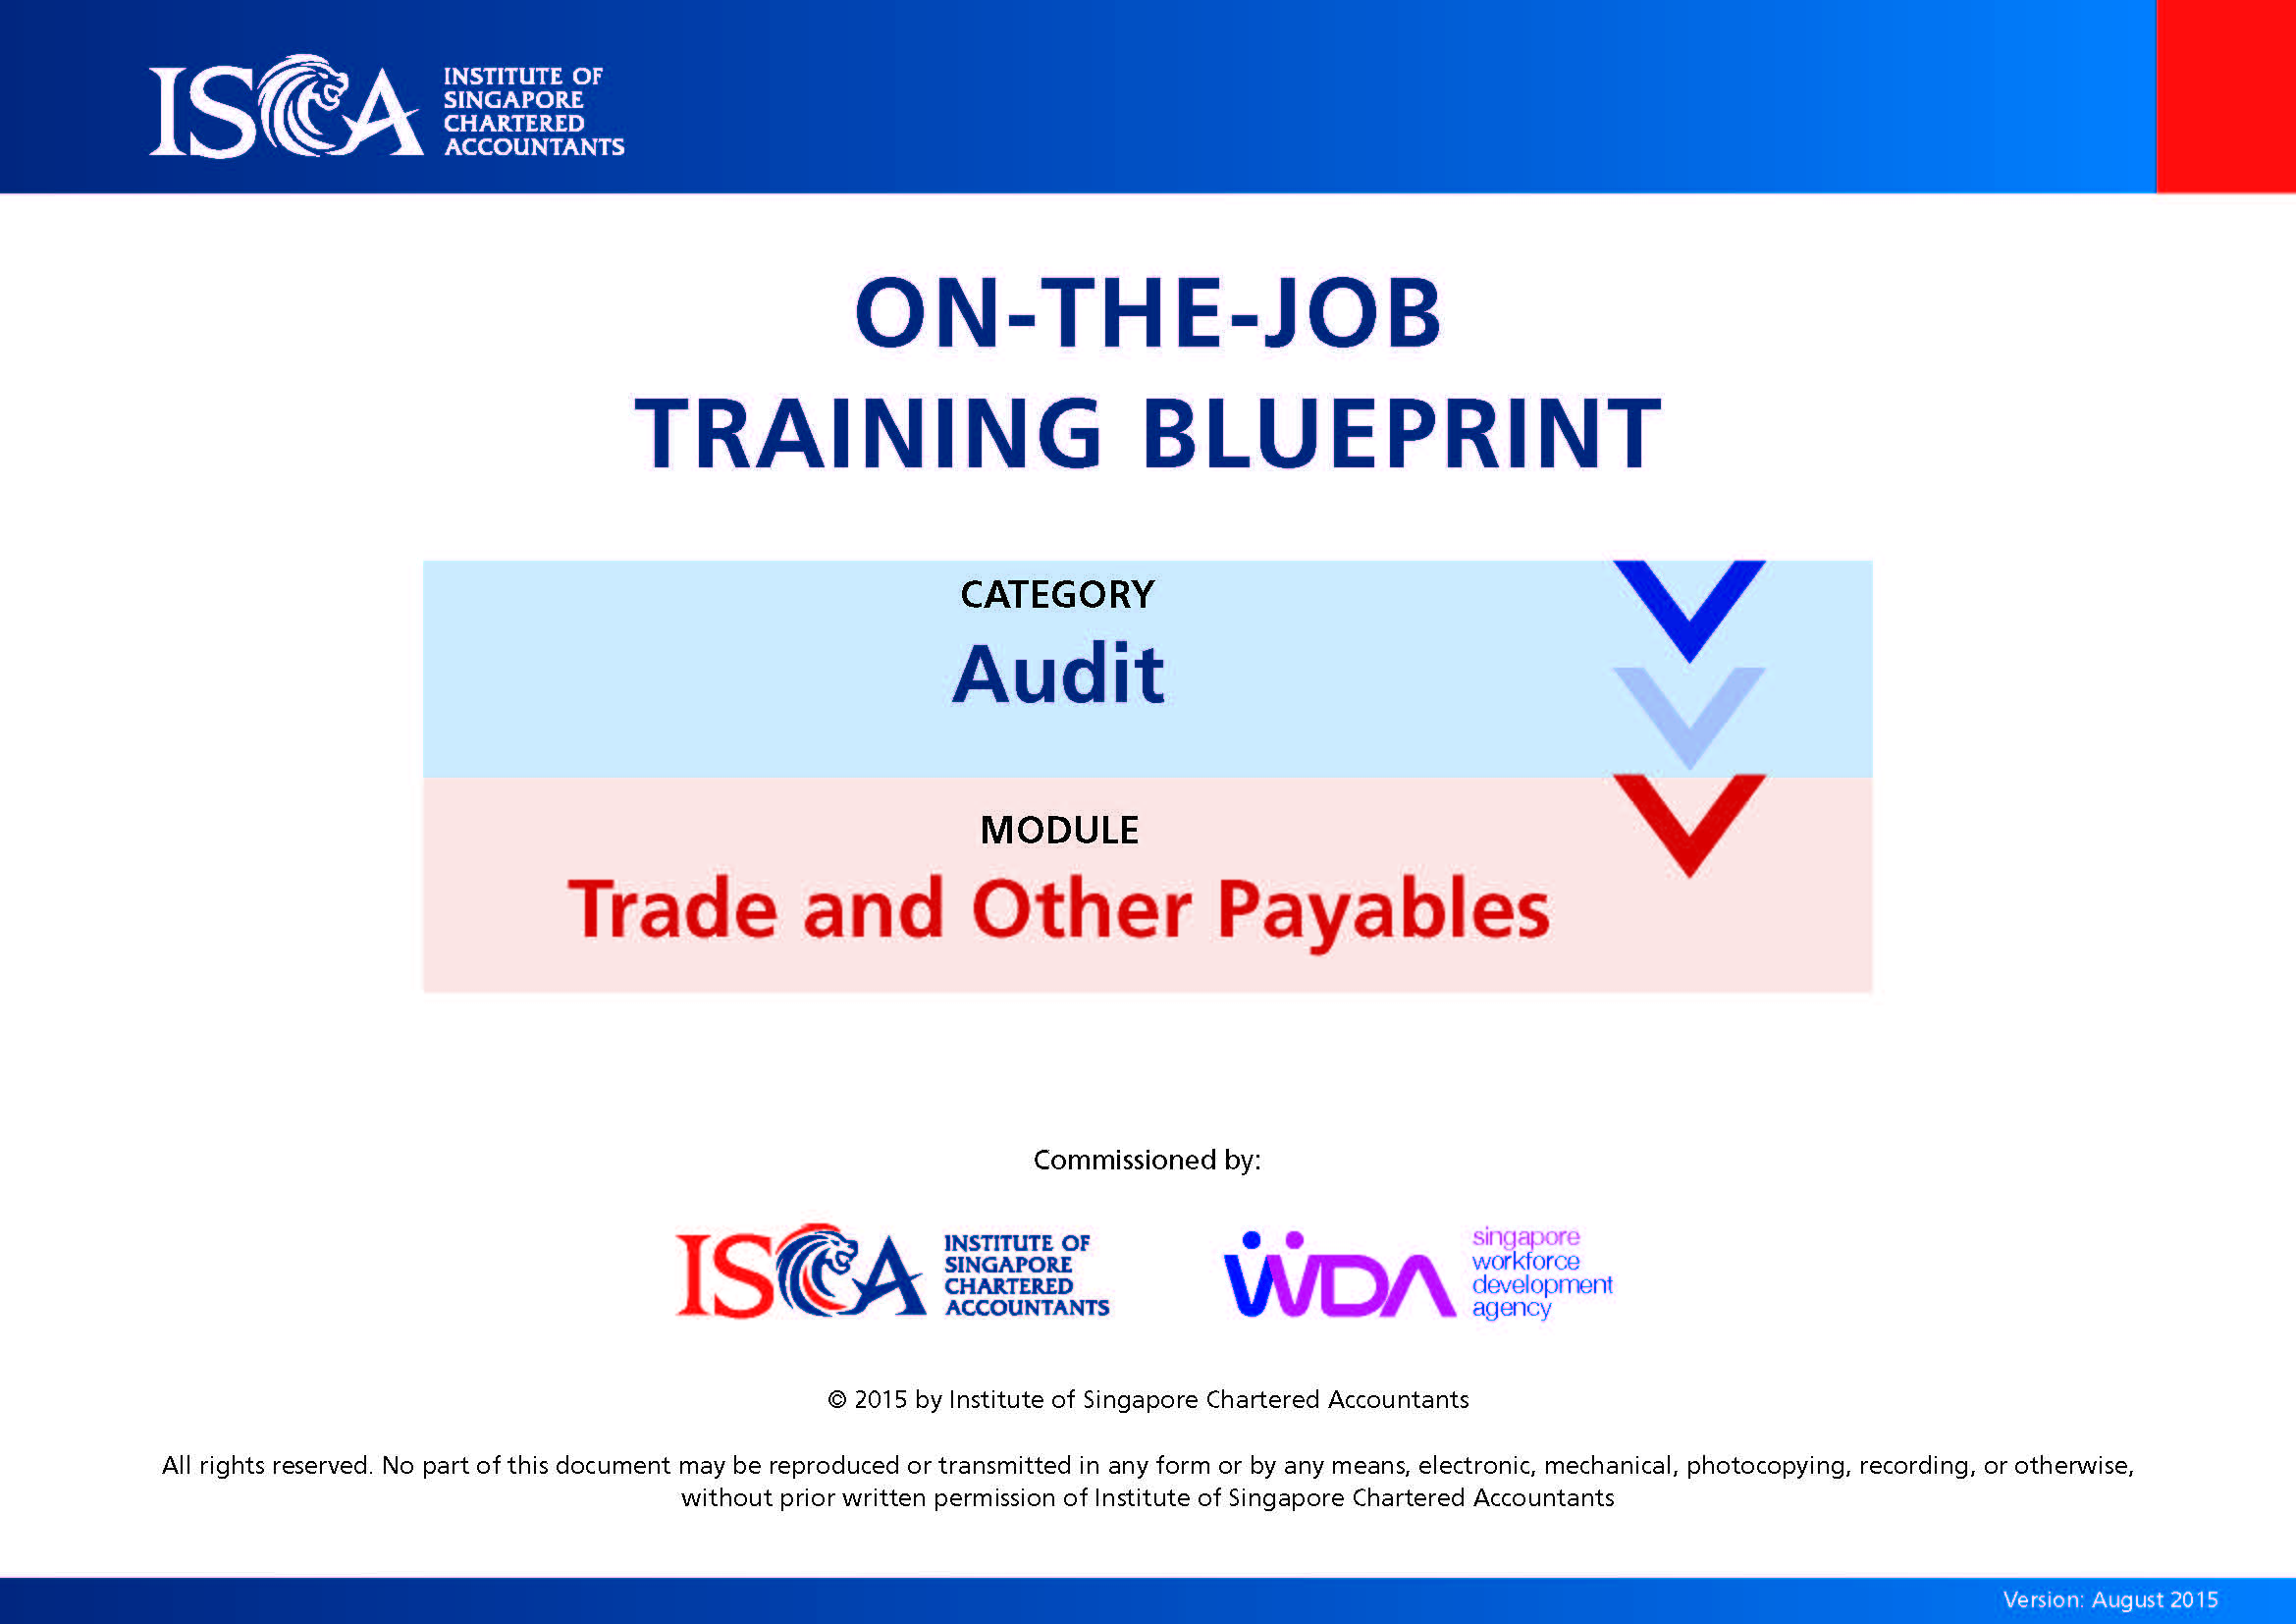 2. OJT_Trade and Other Payables